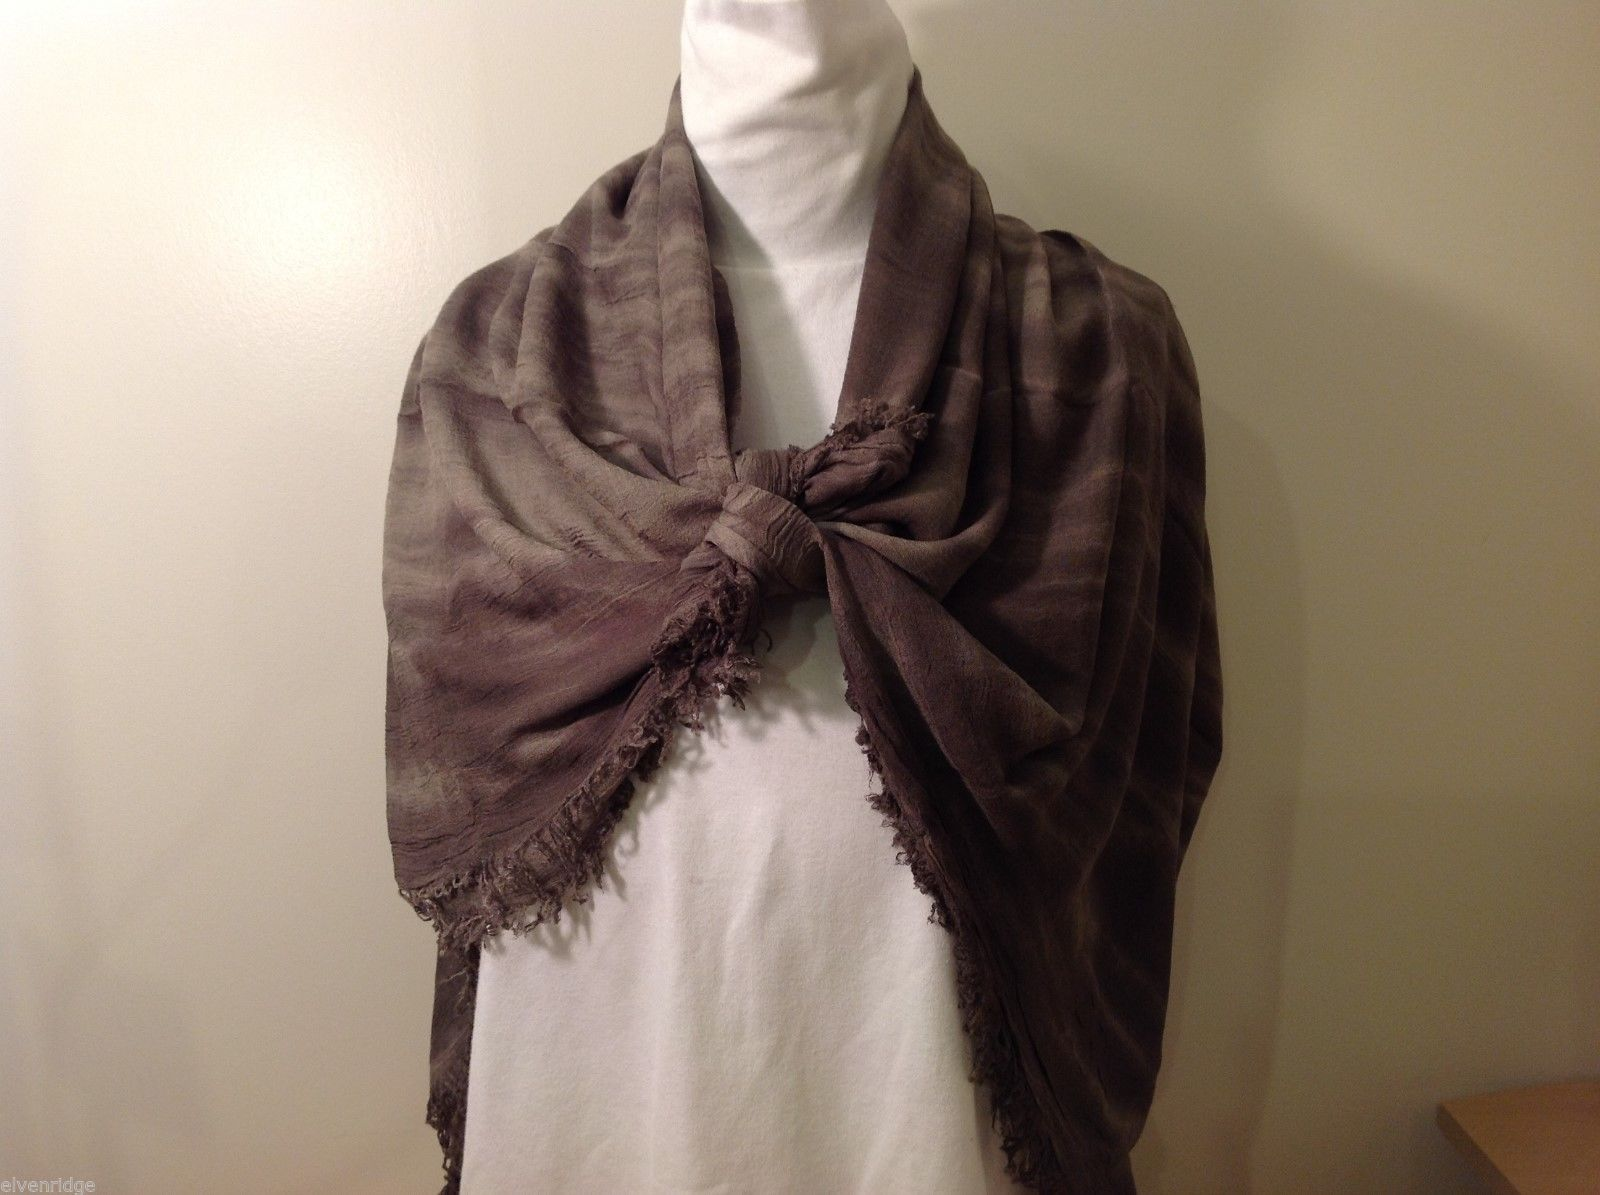 Charcoal Gray Scarf with Tie Die Design, New w/ Tags